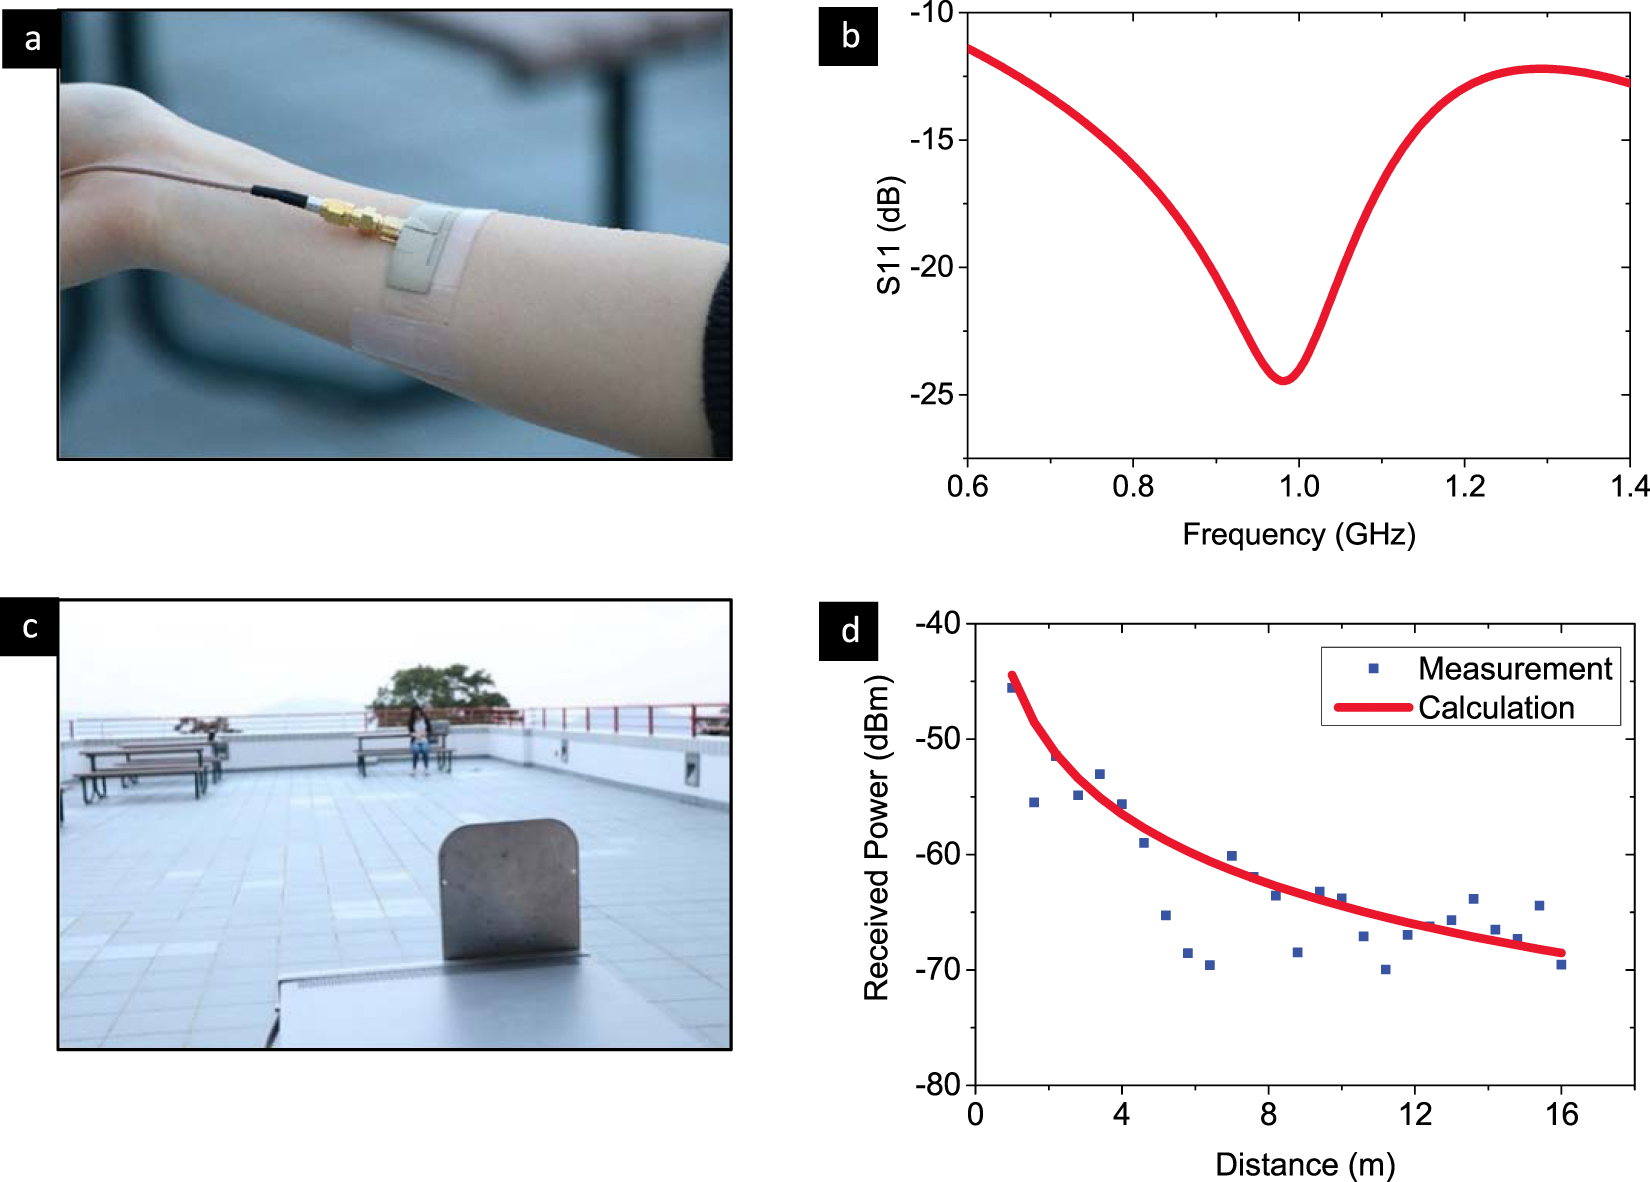 Stretchable Conductive Elastomer For Wireless Wearable Communication The Material To Be Tested Circuit Used Testing Conductivity On Body 22 V Ag Pdms Antenna And Its Transmission Performance In A Real Application Is Directly Mounted Human Arm Simulate